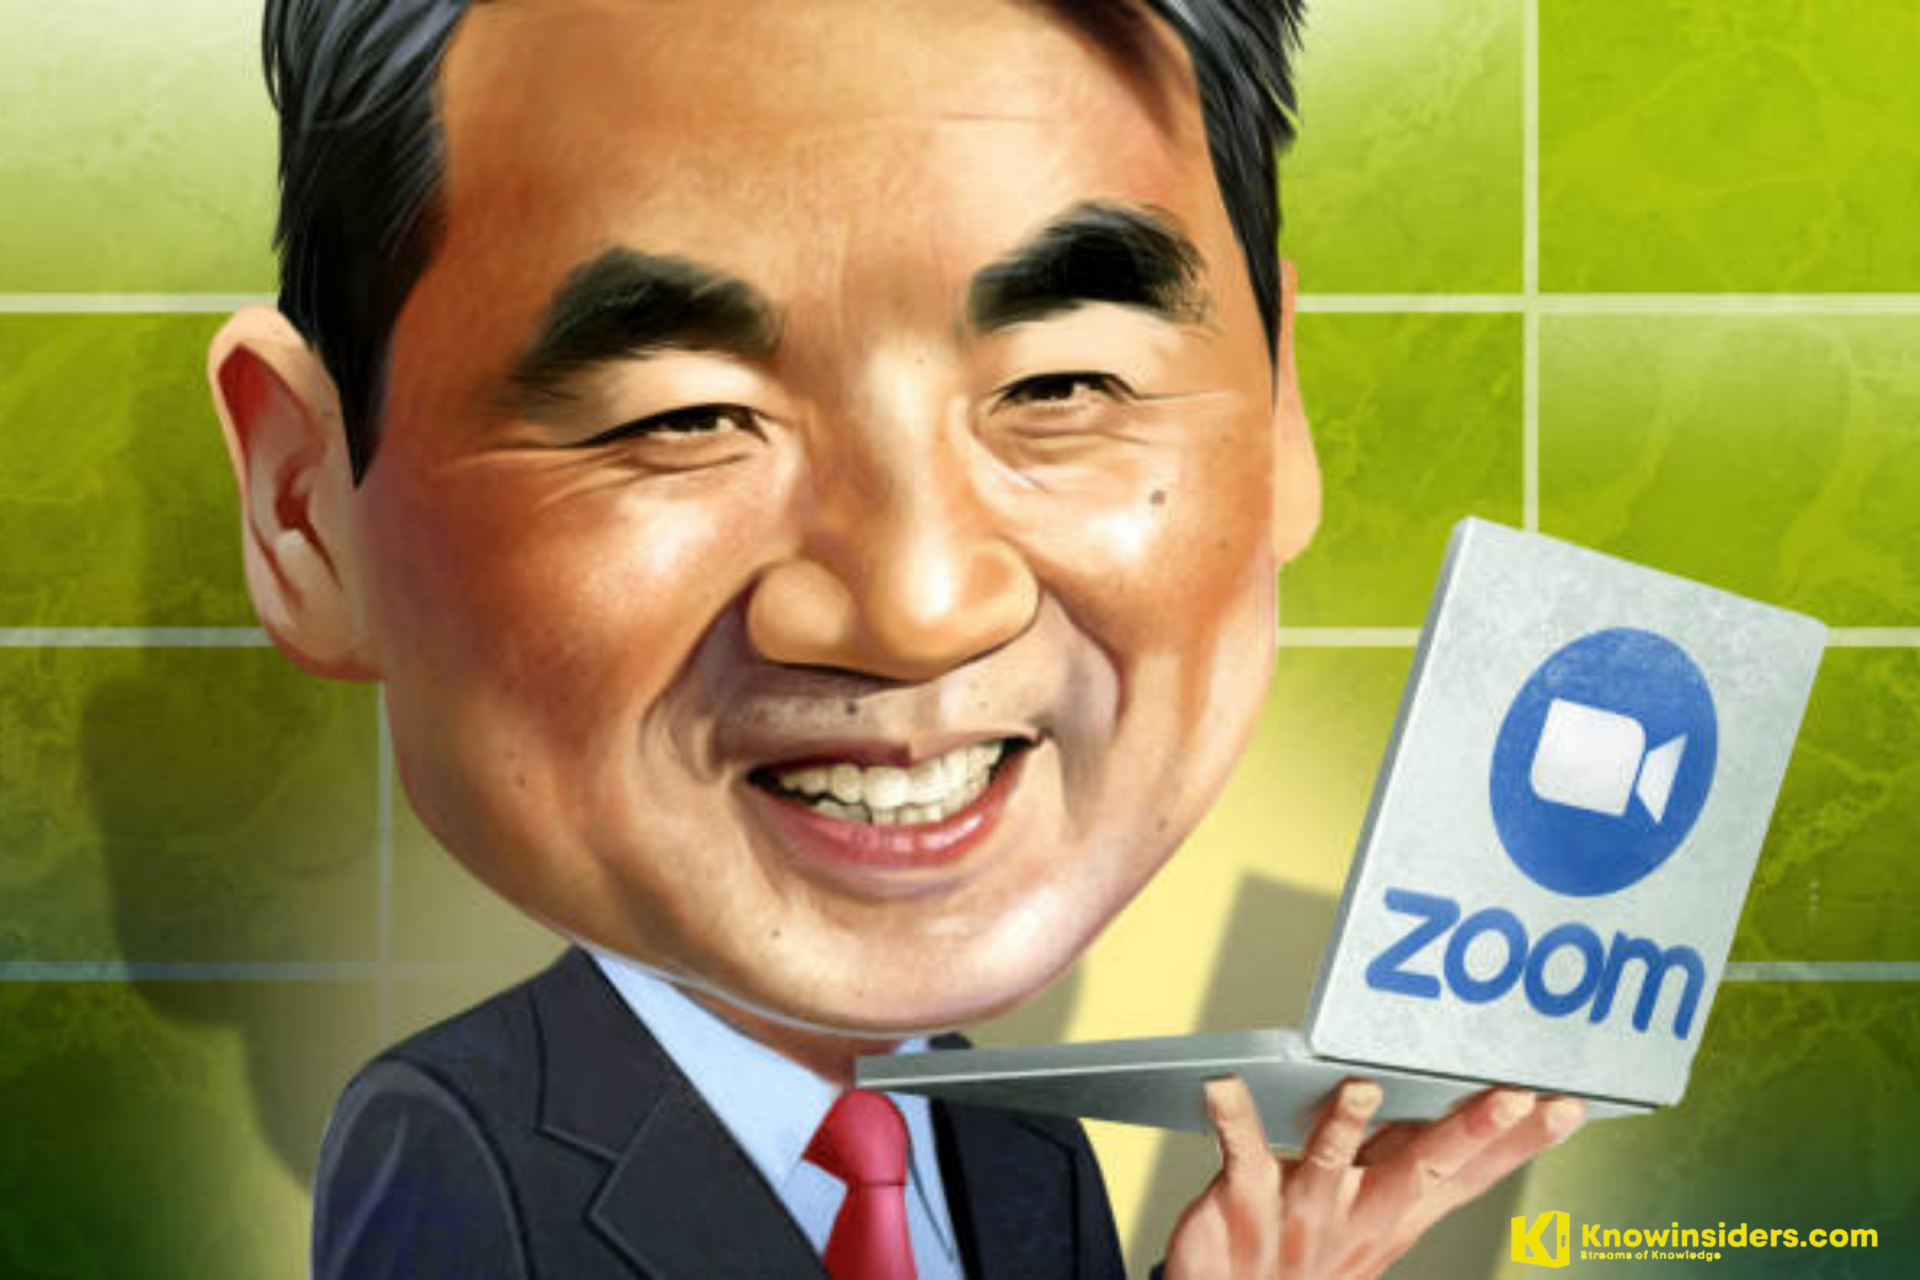 Who is Eric Yuang: Bio, Career, and Zoom Empir